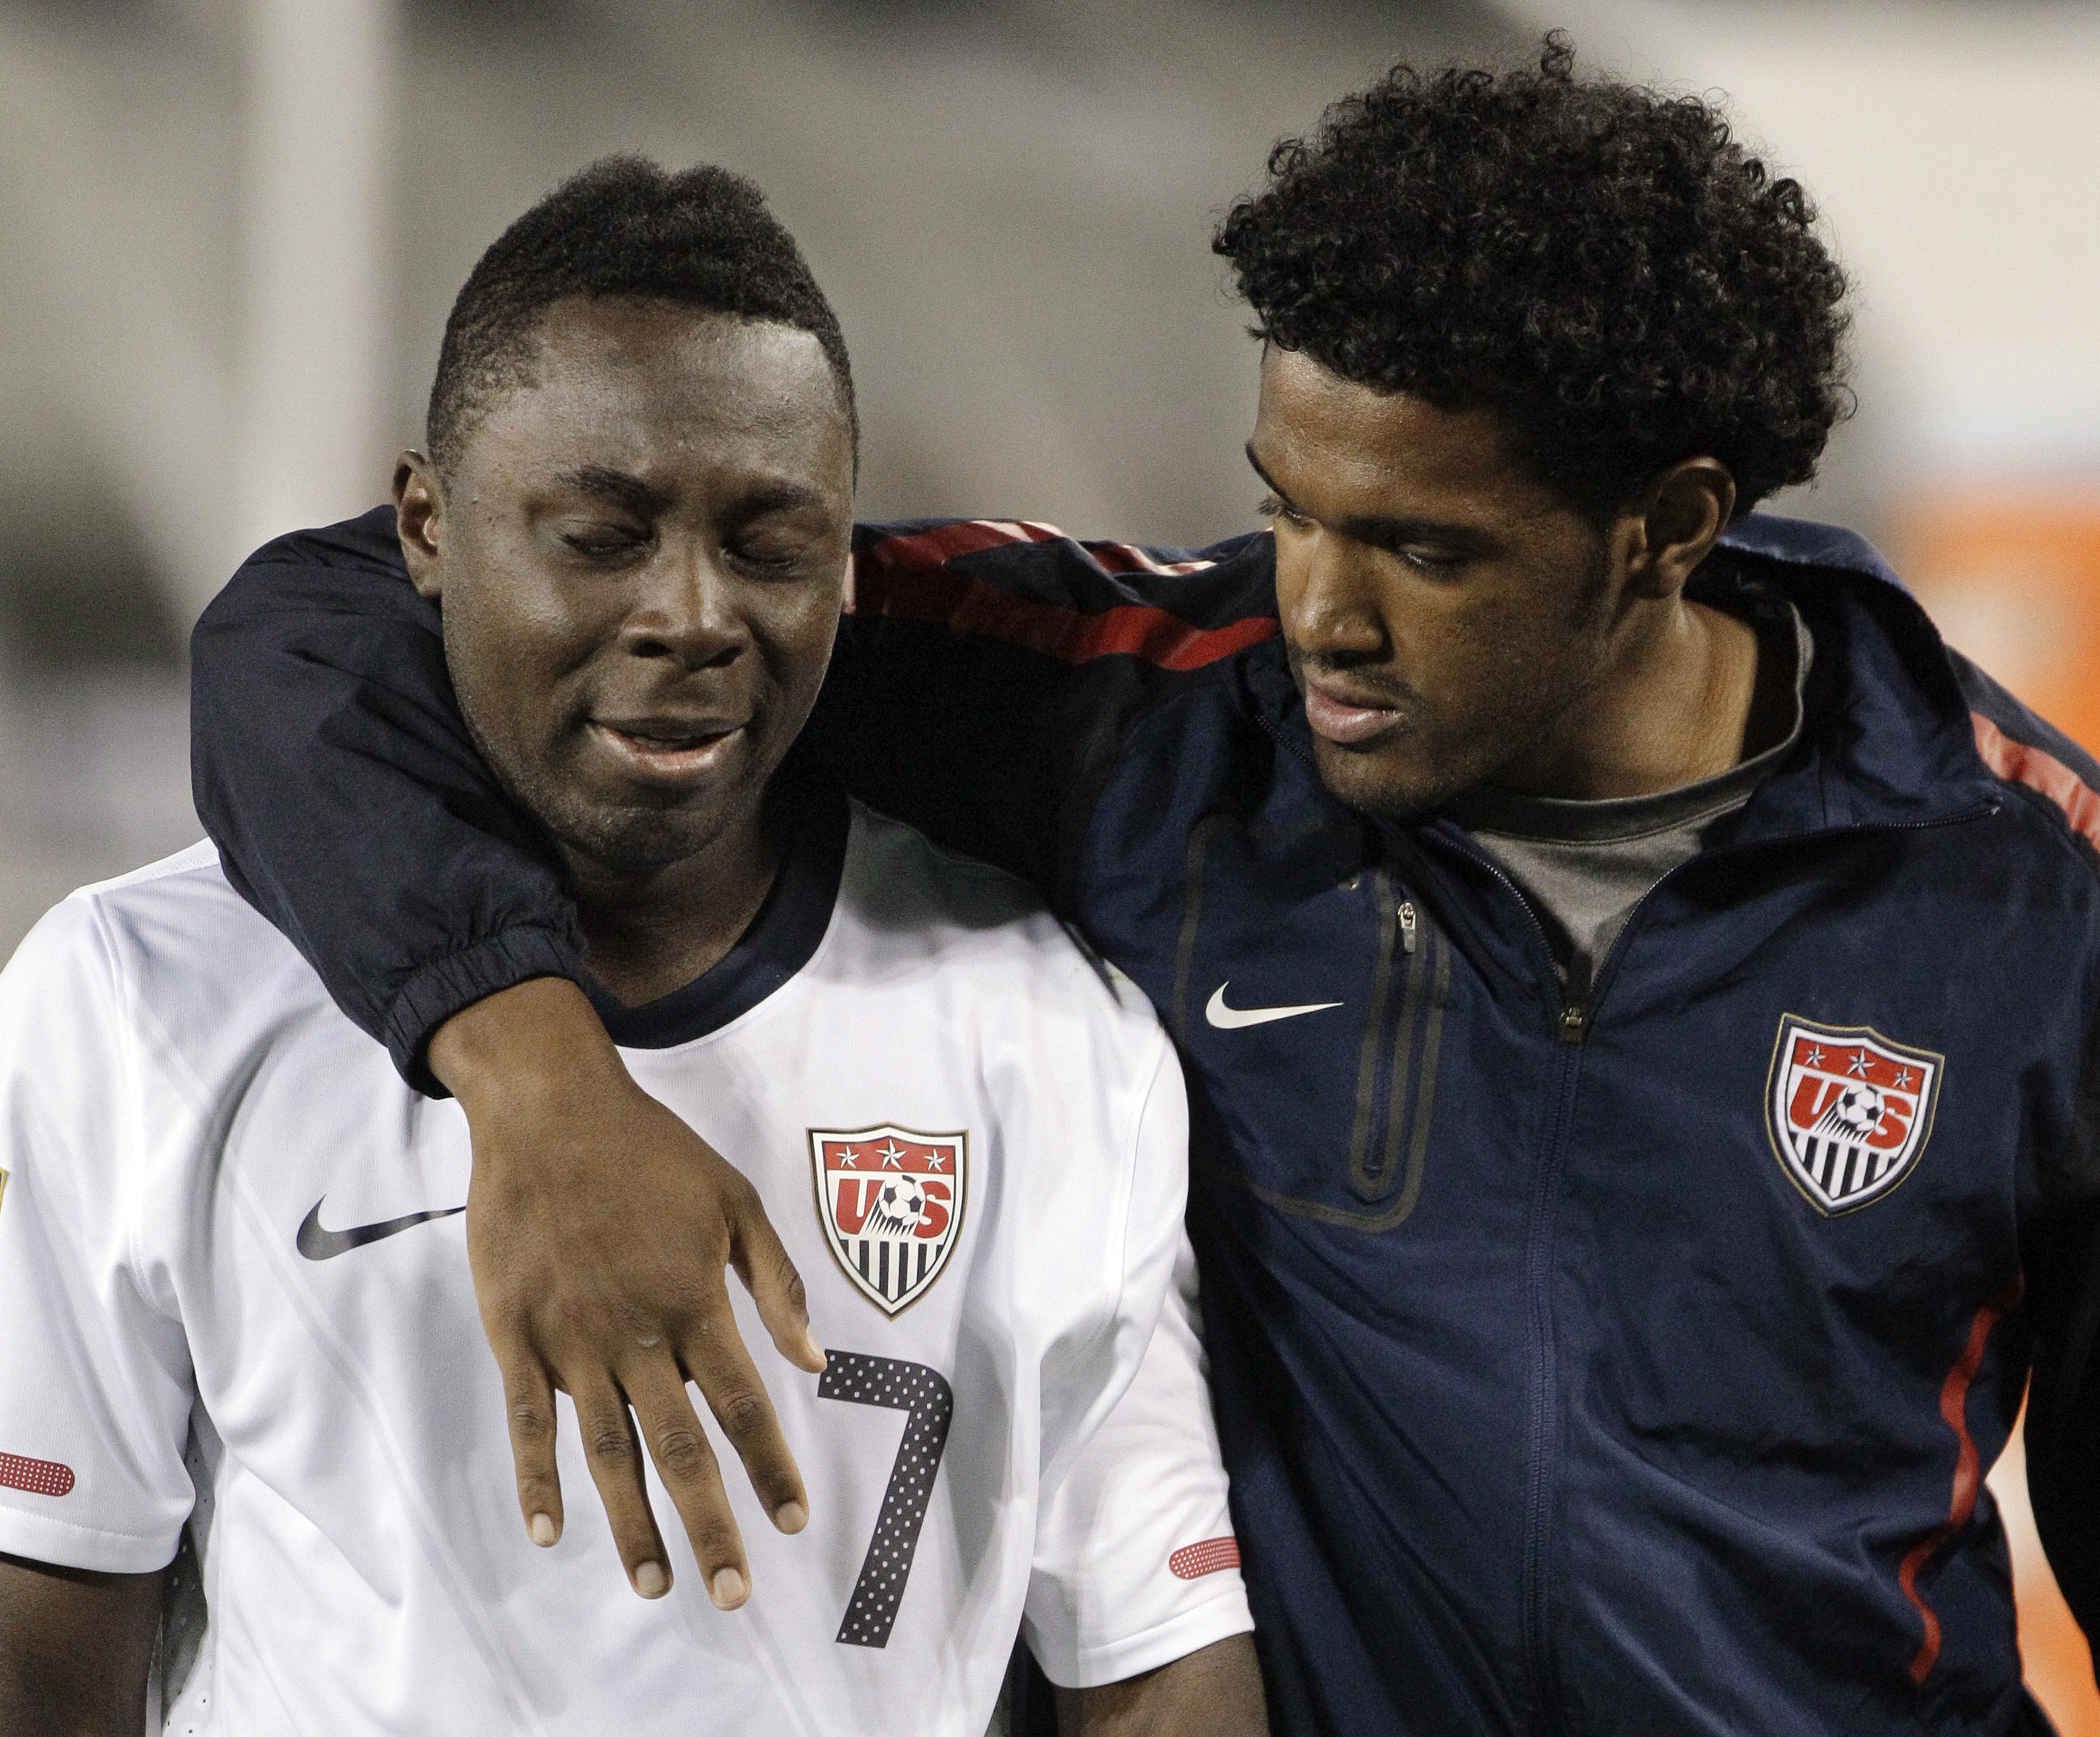 Freddy Adu set for trial with Polish club against manager's wishes